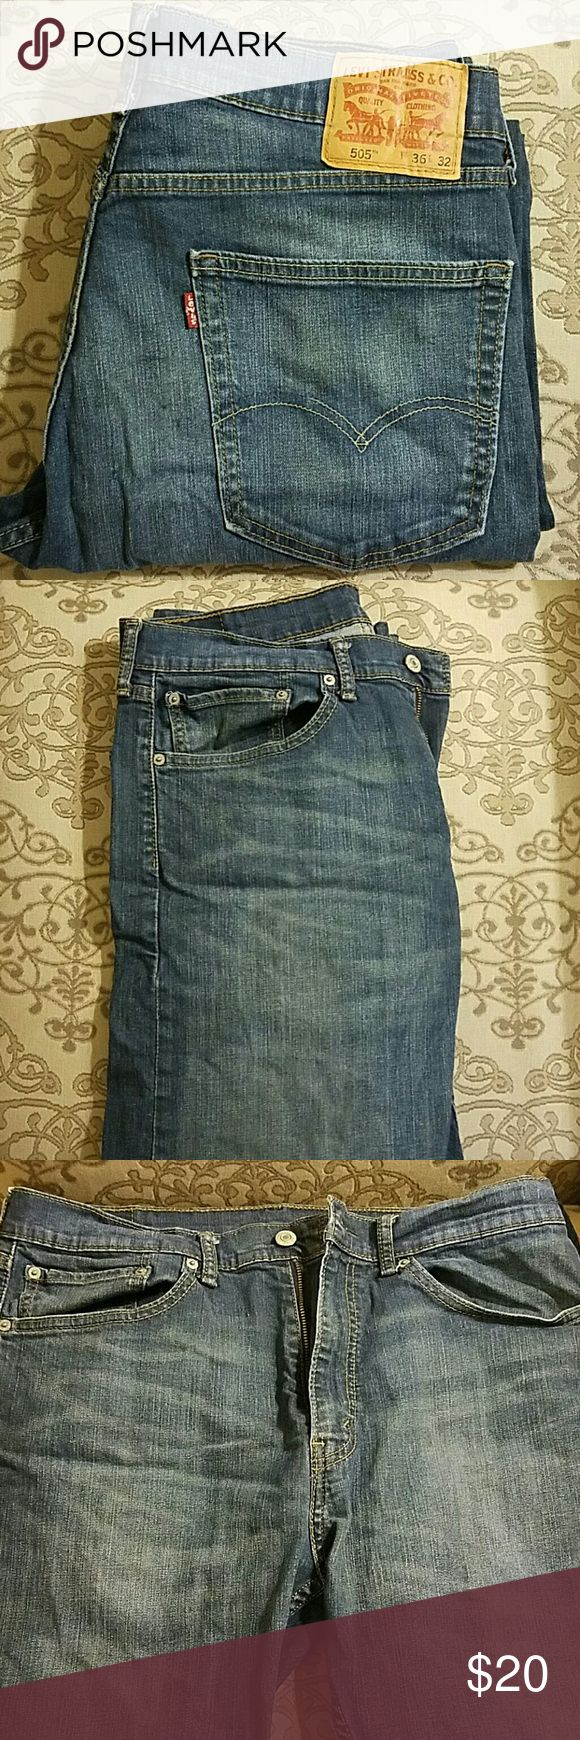 Men's Levi's 505 Regular Fit Jeans These jeans are in great used condition and come come from a smoke free home. Please see all pictures and feel free to ask any questions. Levi's Jeans Straight